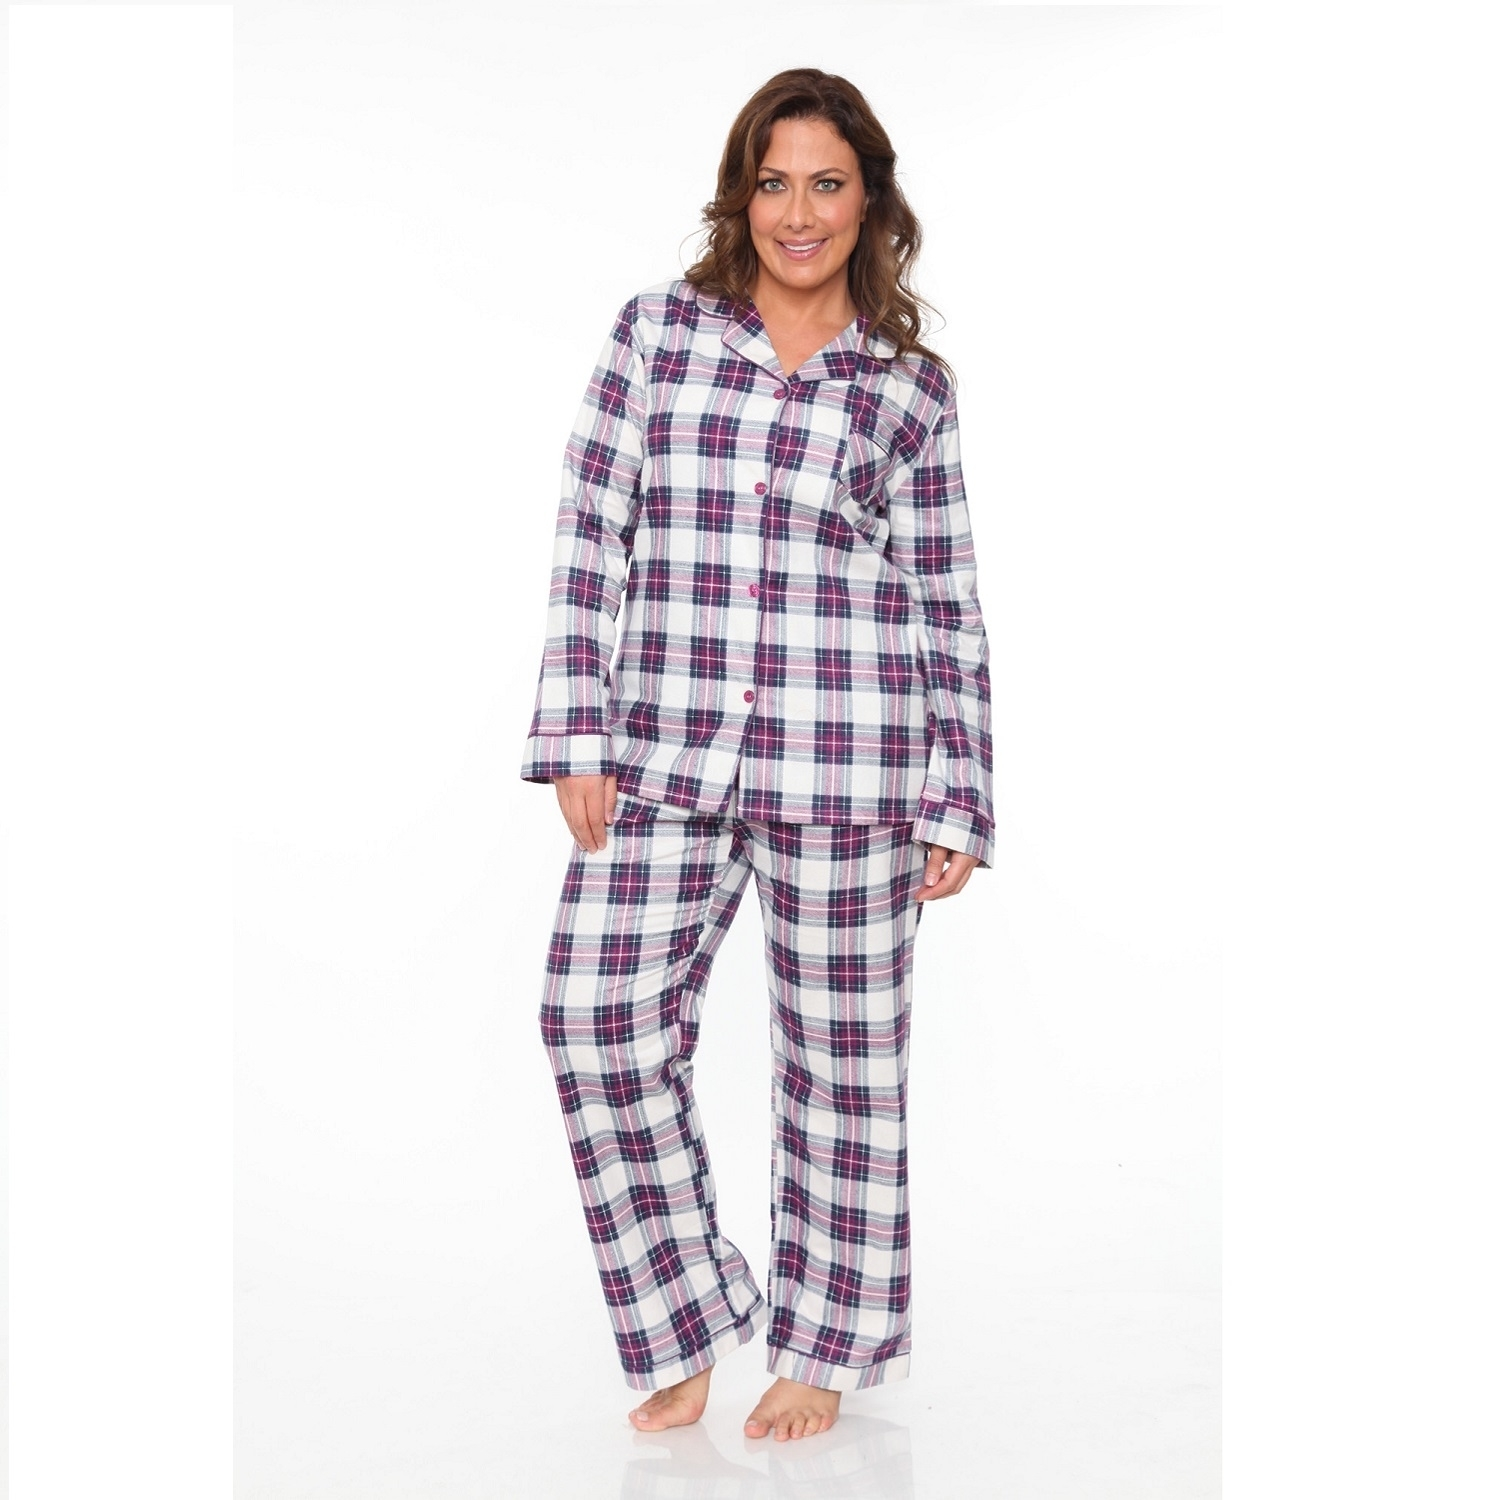 274cd555e3f6 Plus Size Flannel Pajama Set Purple   White Plaid-in Pajama Sets ...